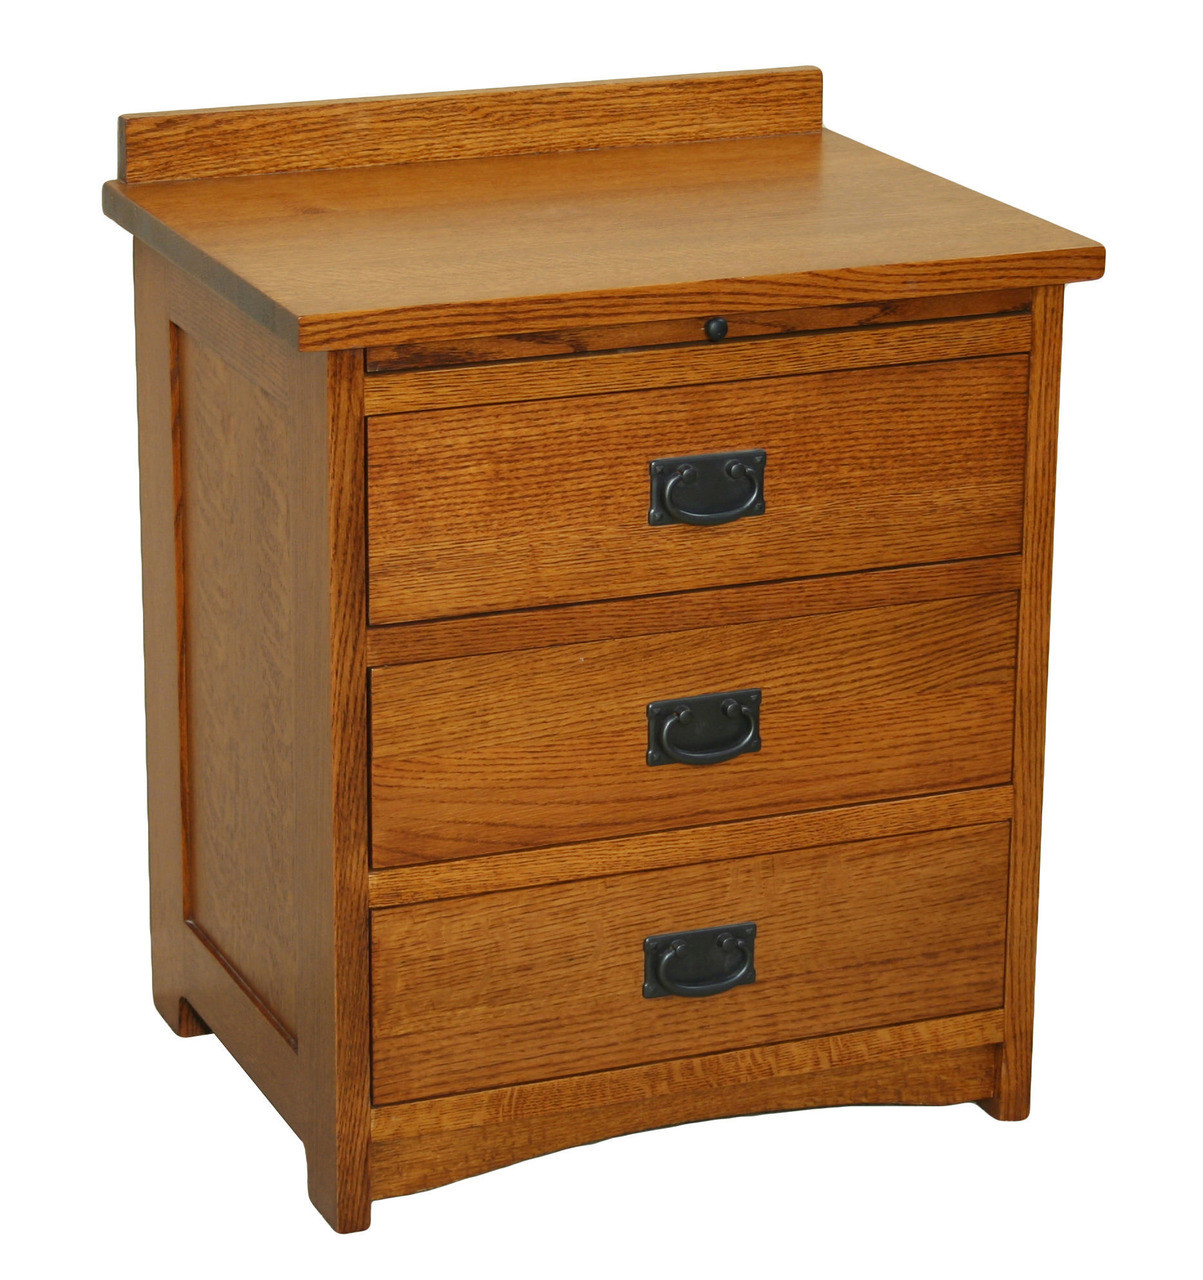 American Mission 3 Drawer Bedside Table W Pullout Shelf